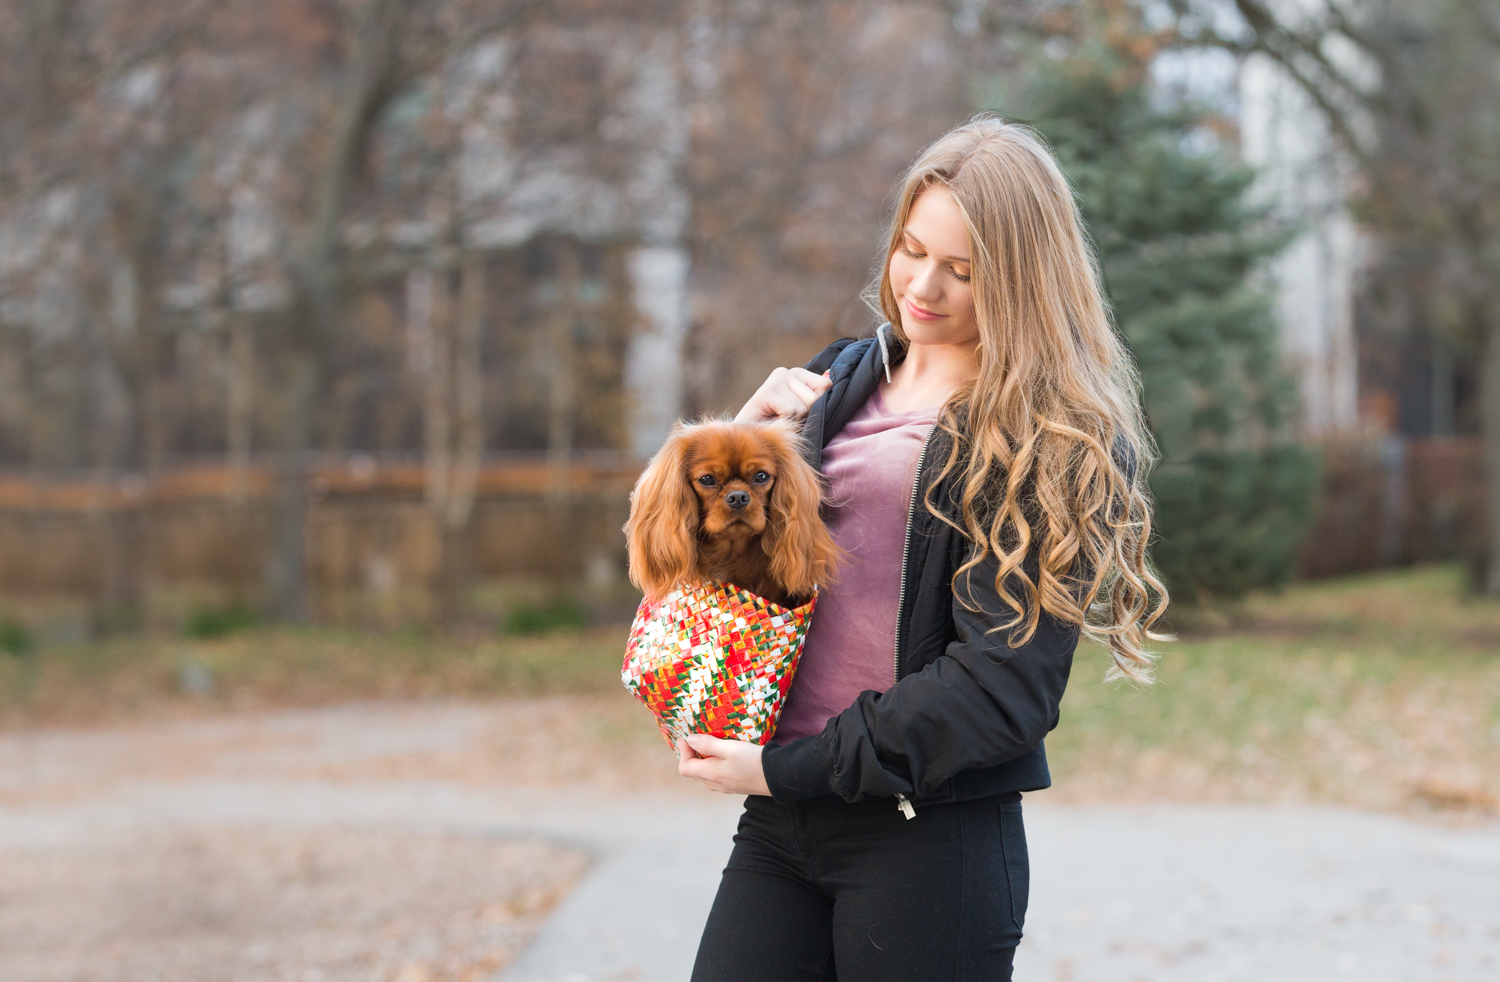 Girl carrying her dog in a pet bag